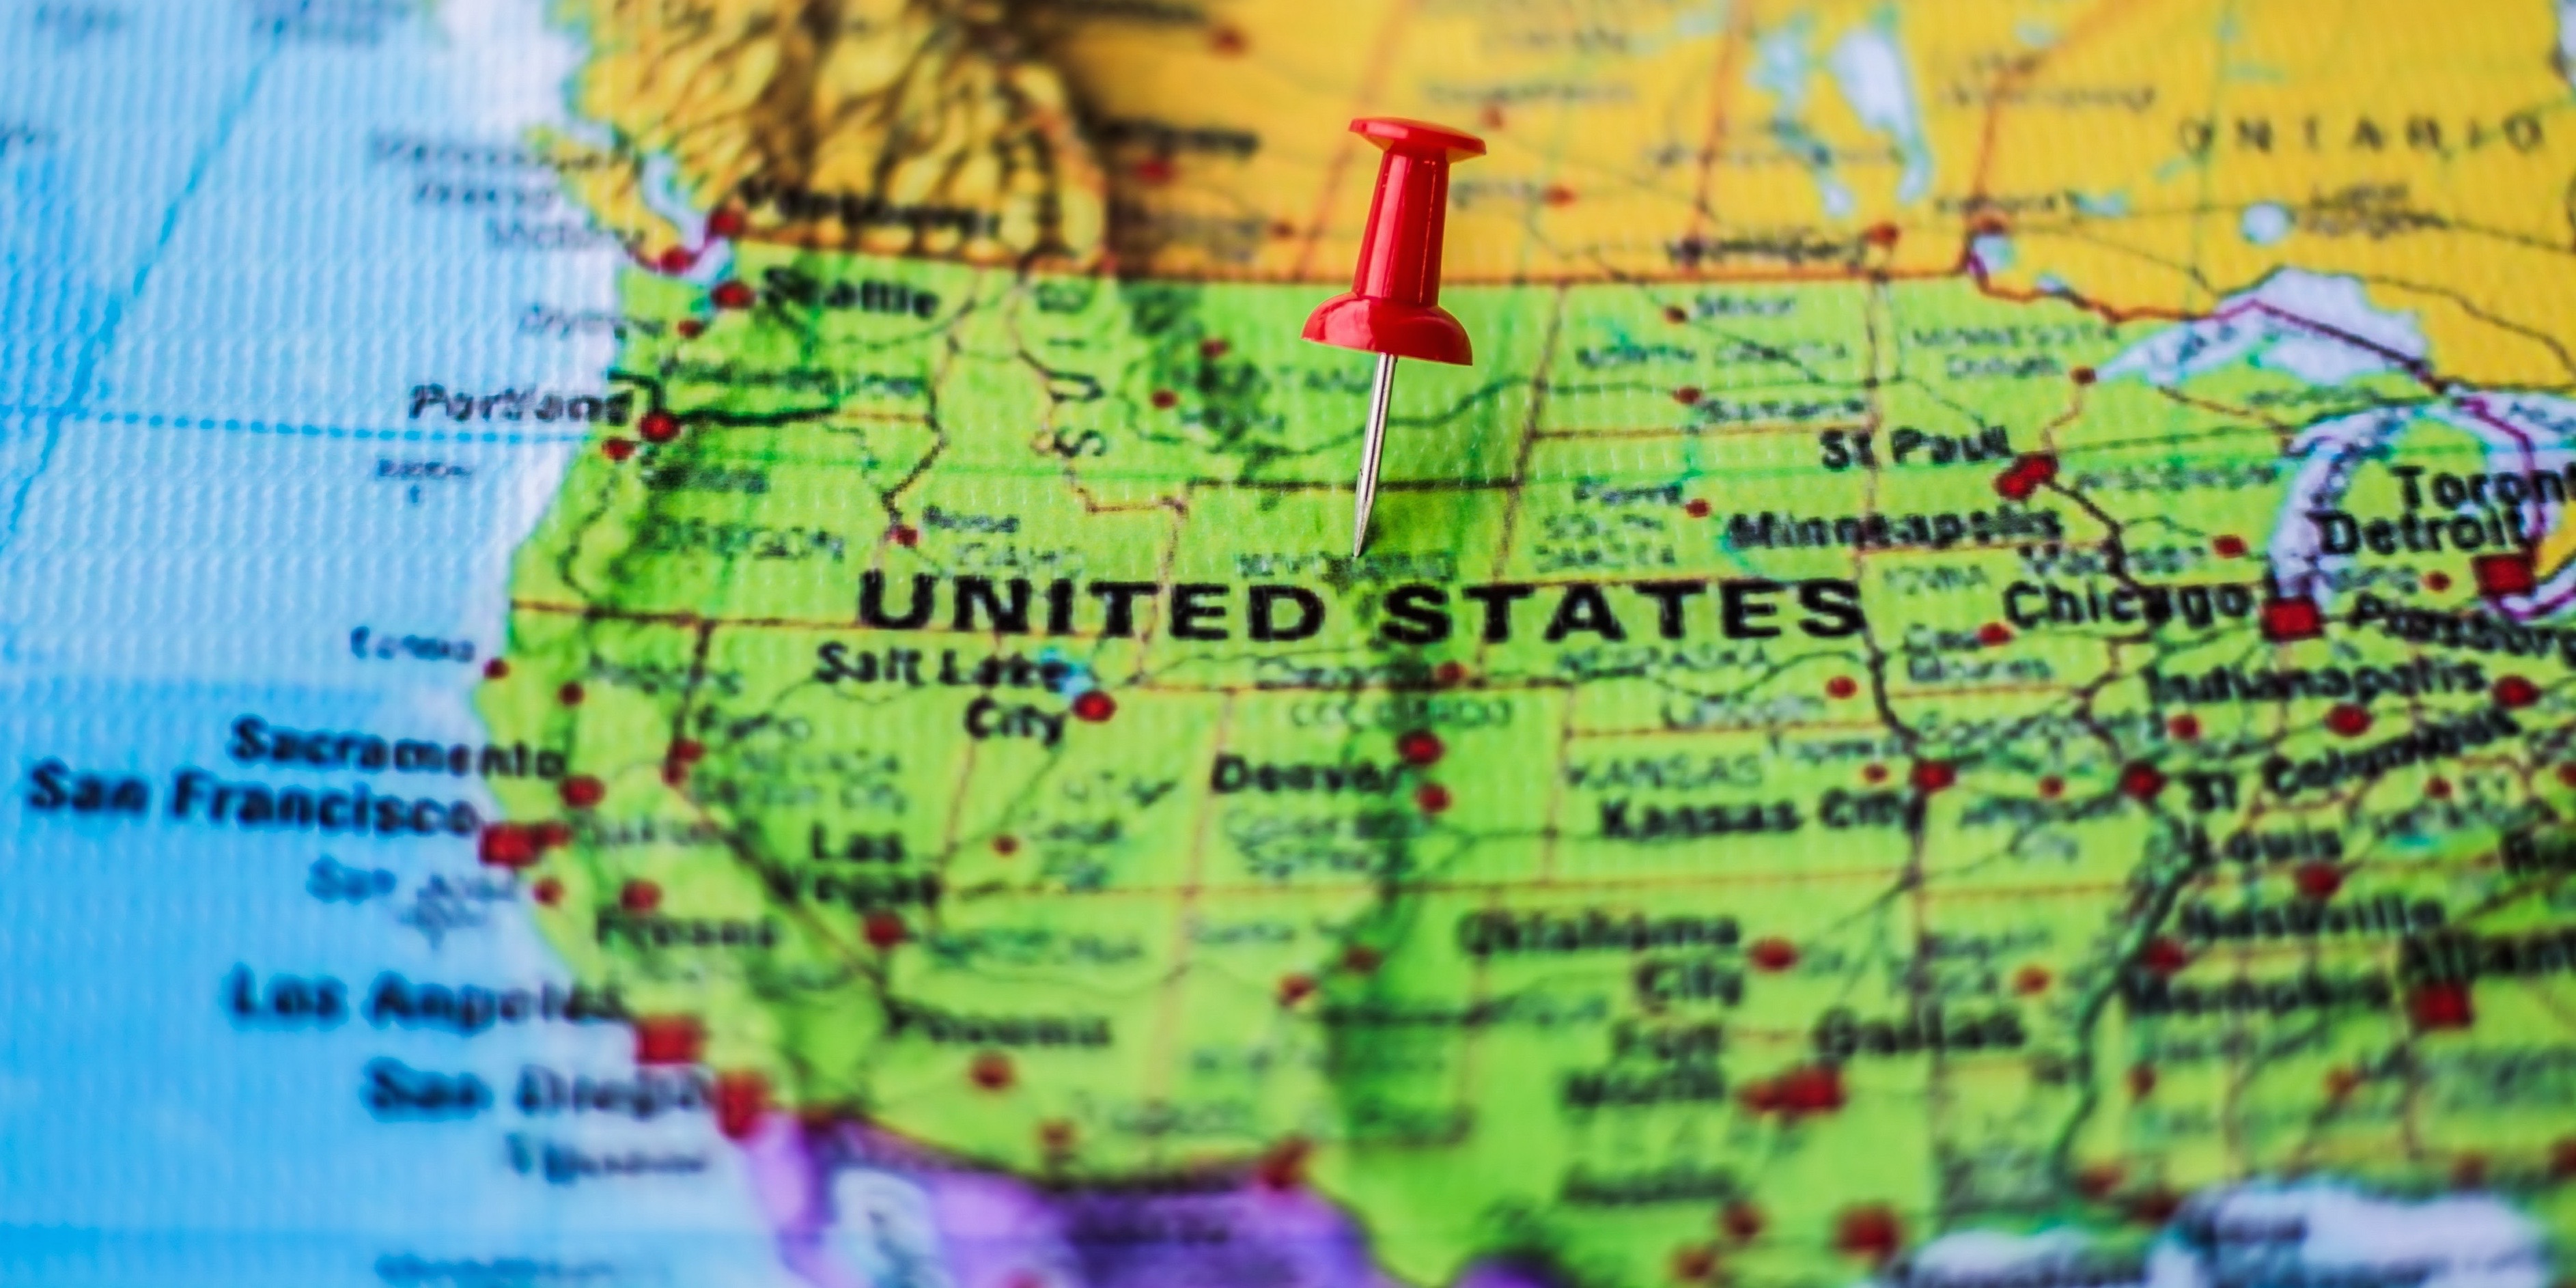 Secretary of State Business Search: Where to Go in All 50 States